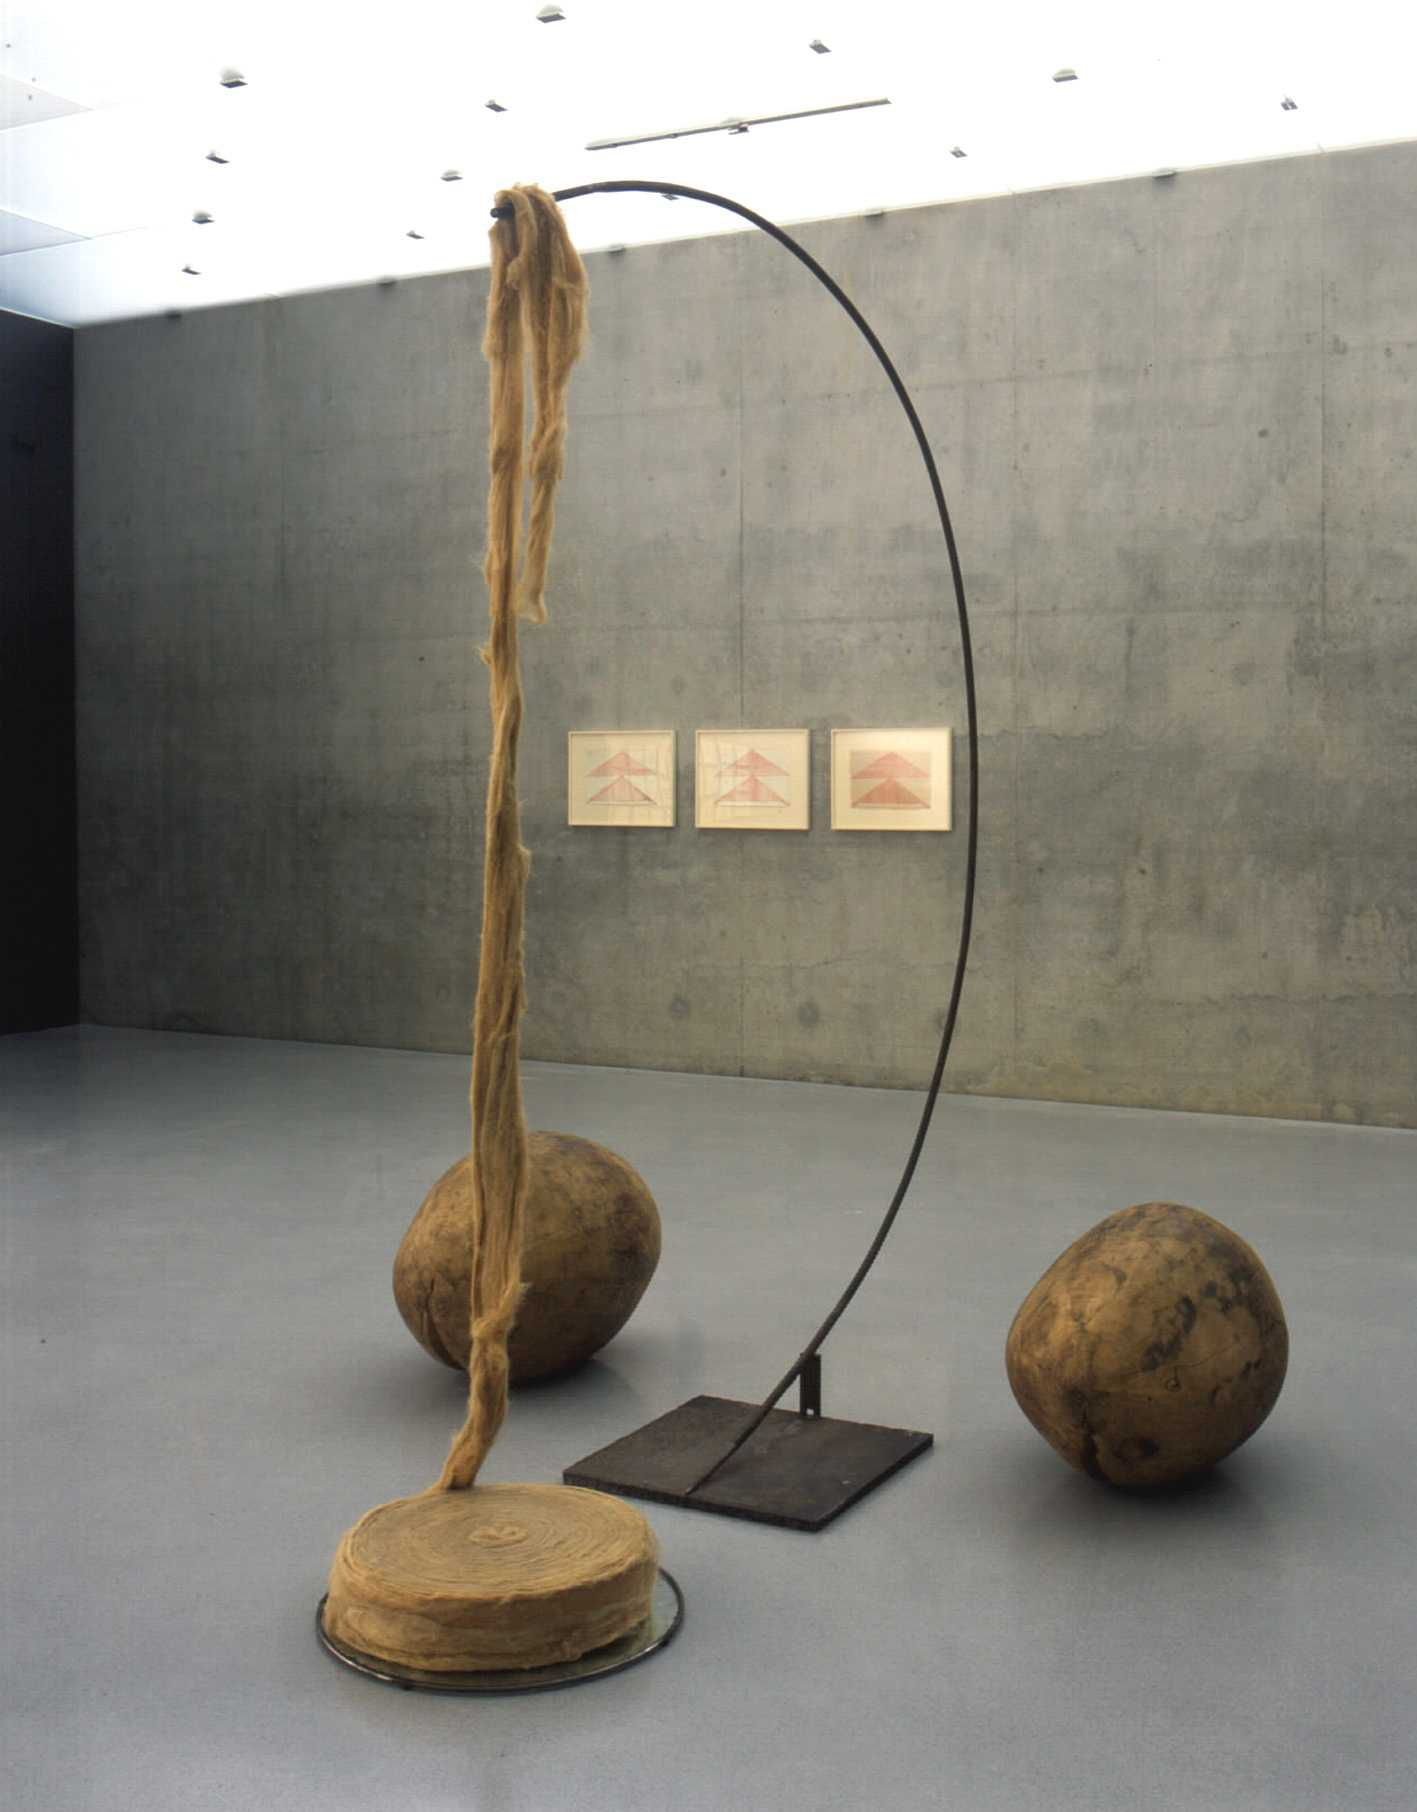 Louise bourgeois needle fuseau 1992 when i was growing up all the women in my house were using needles i have always had a fascination with the